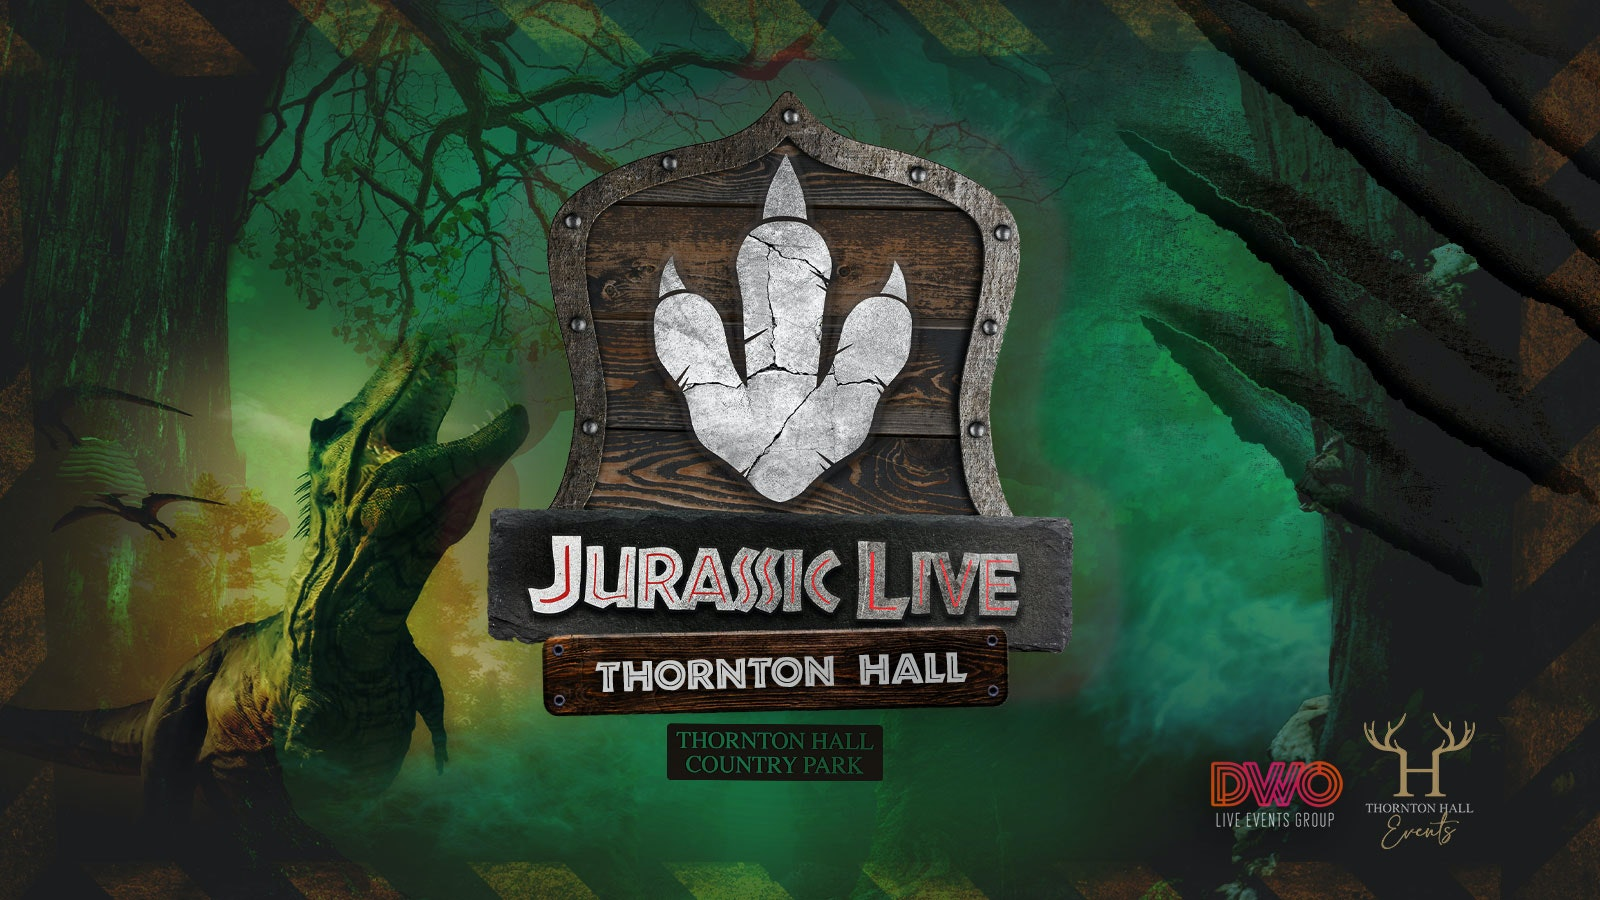 Jurassic Live – Wednesday 31st March – 12noon